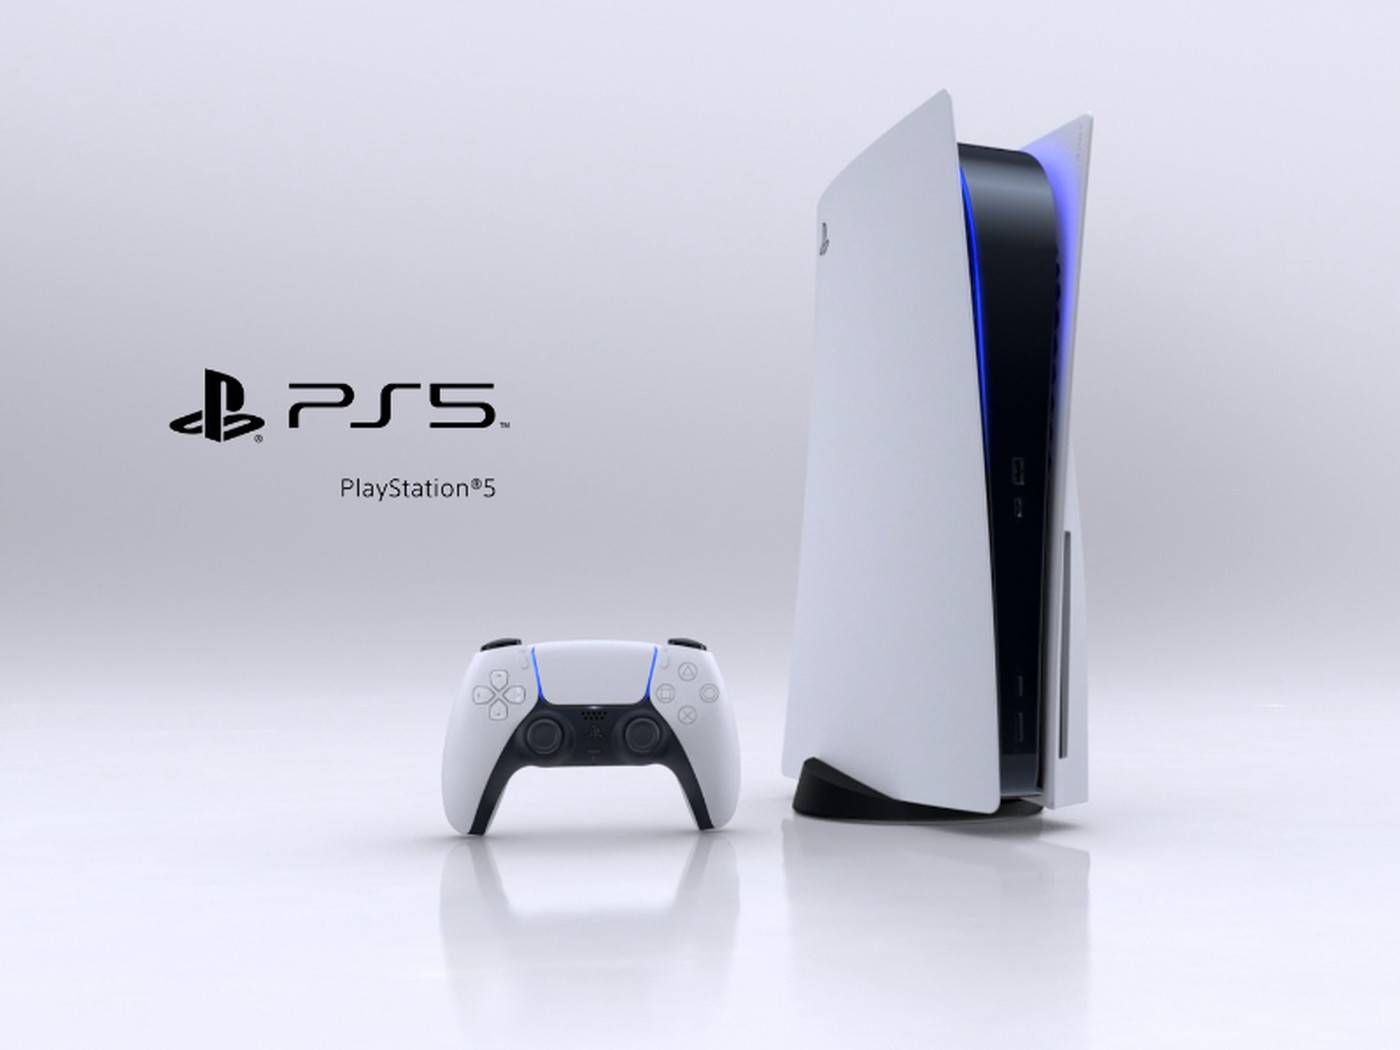 Playstation 5 Announcement Specs Hardware And Design The Verge